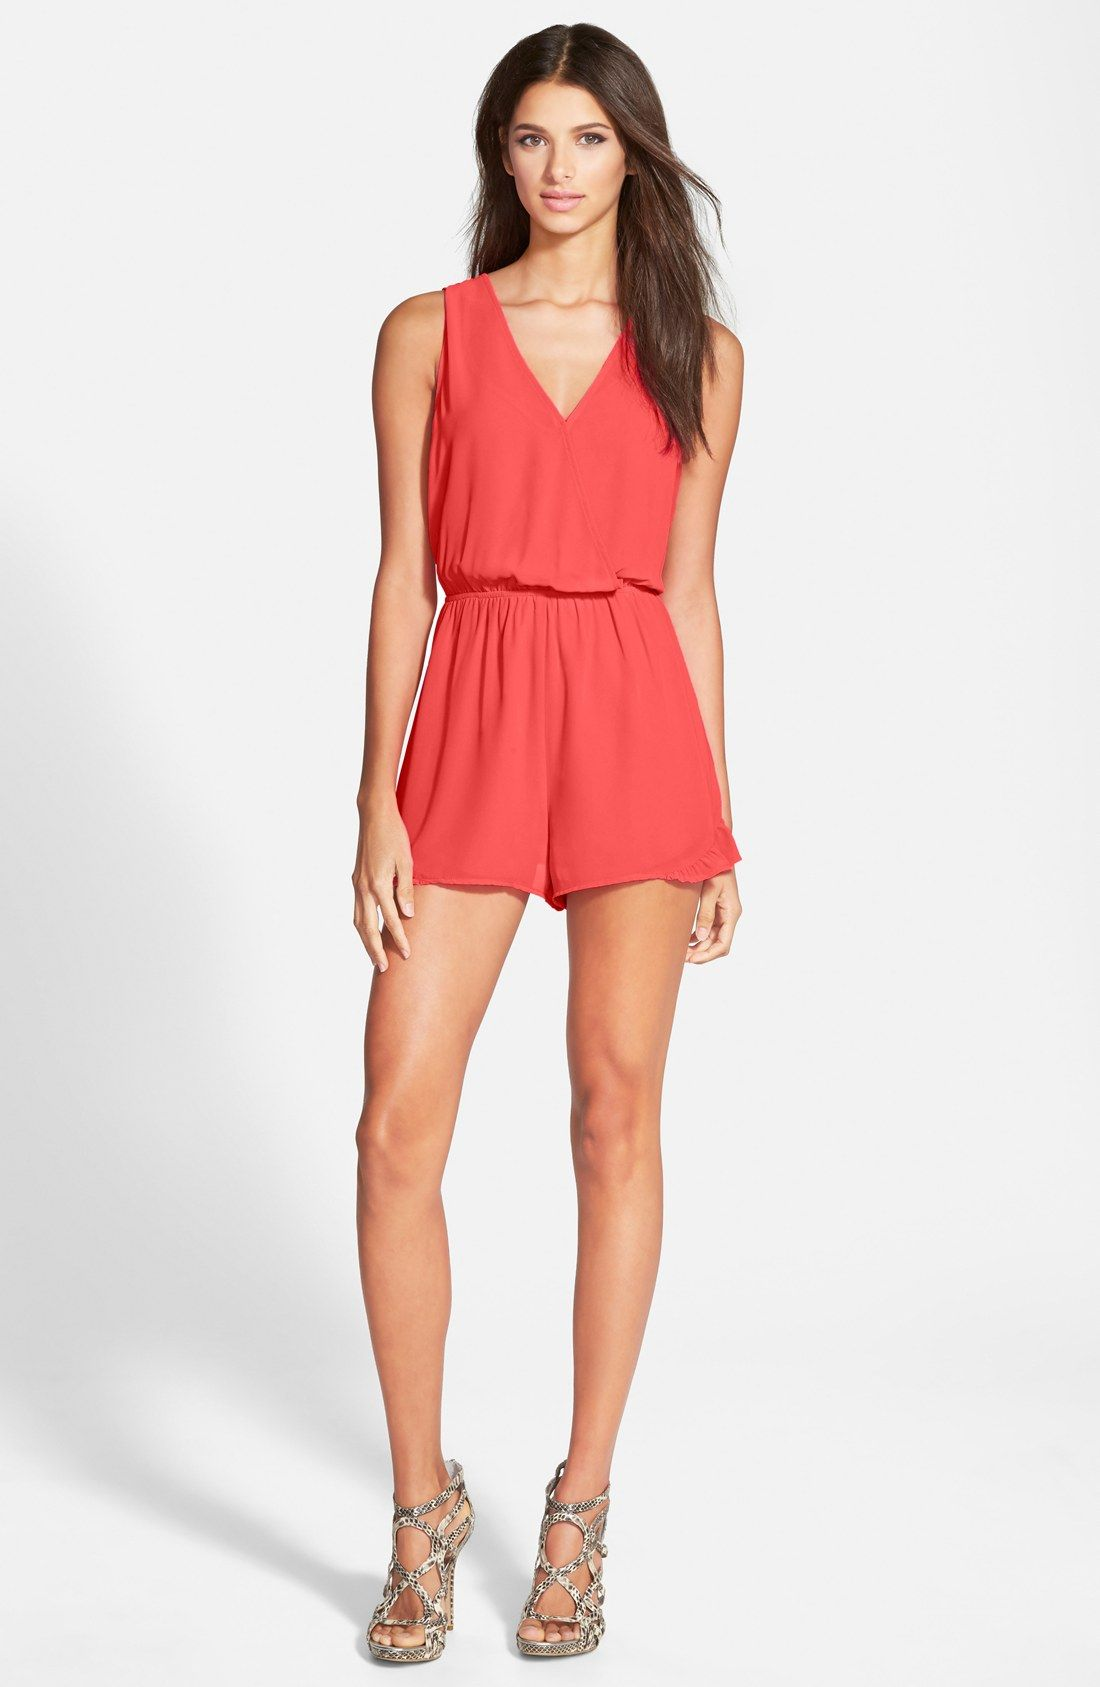 15 Best Rompers For Women For a Playful Look | Summer ...